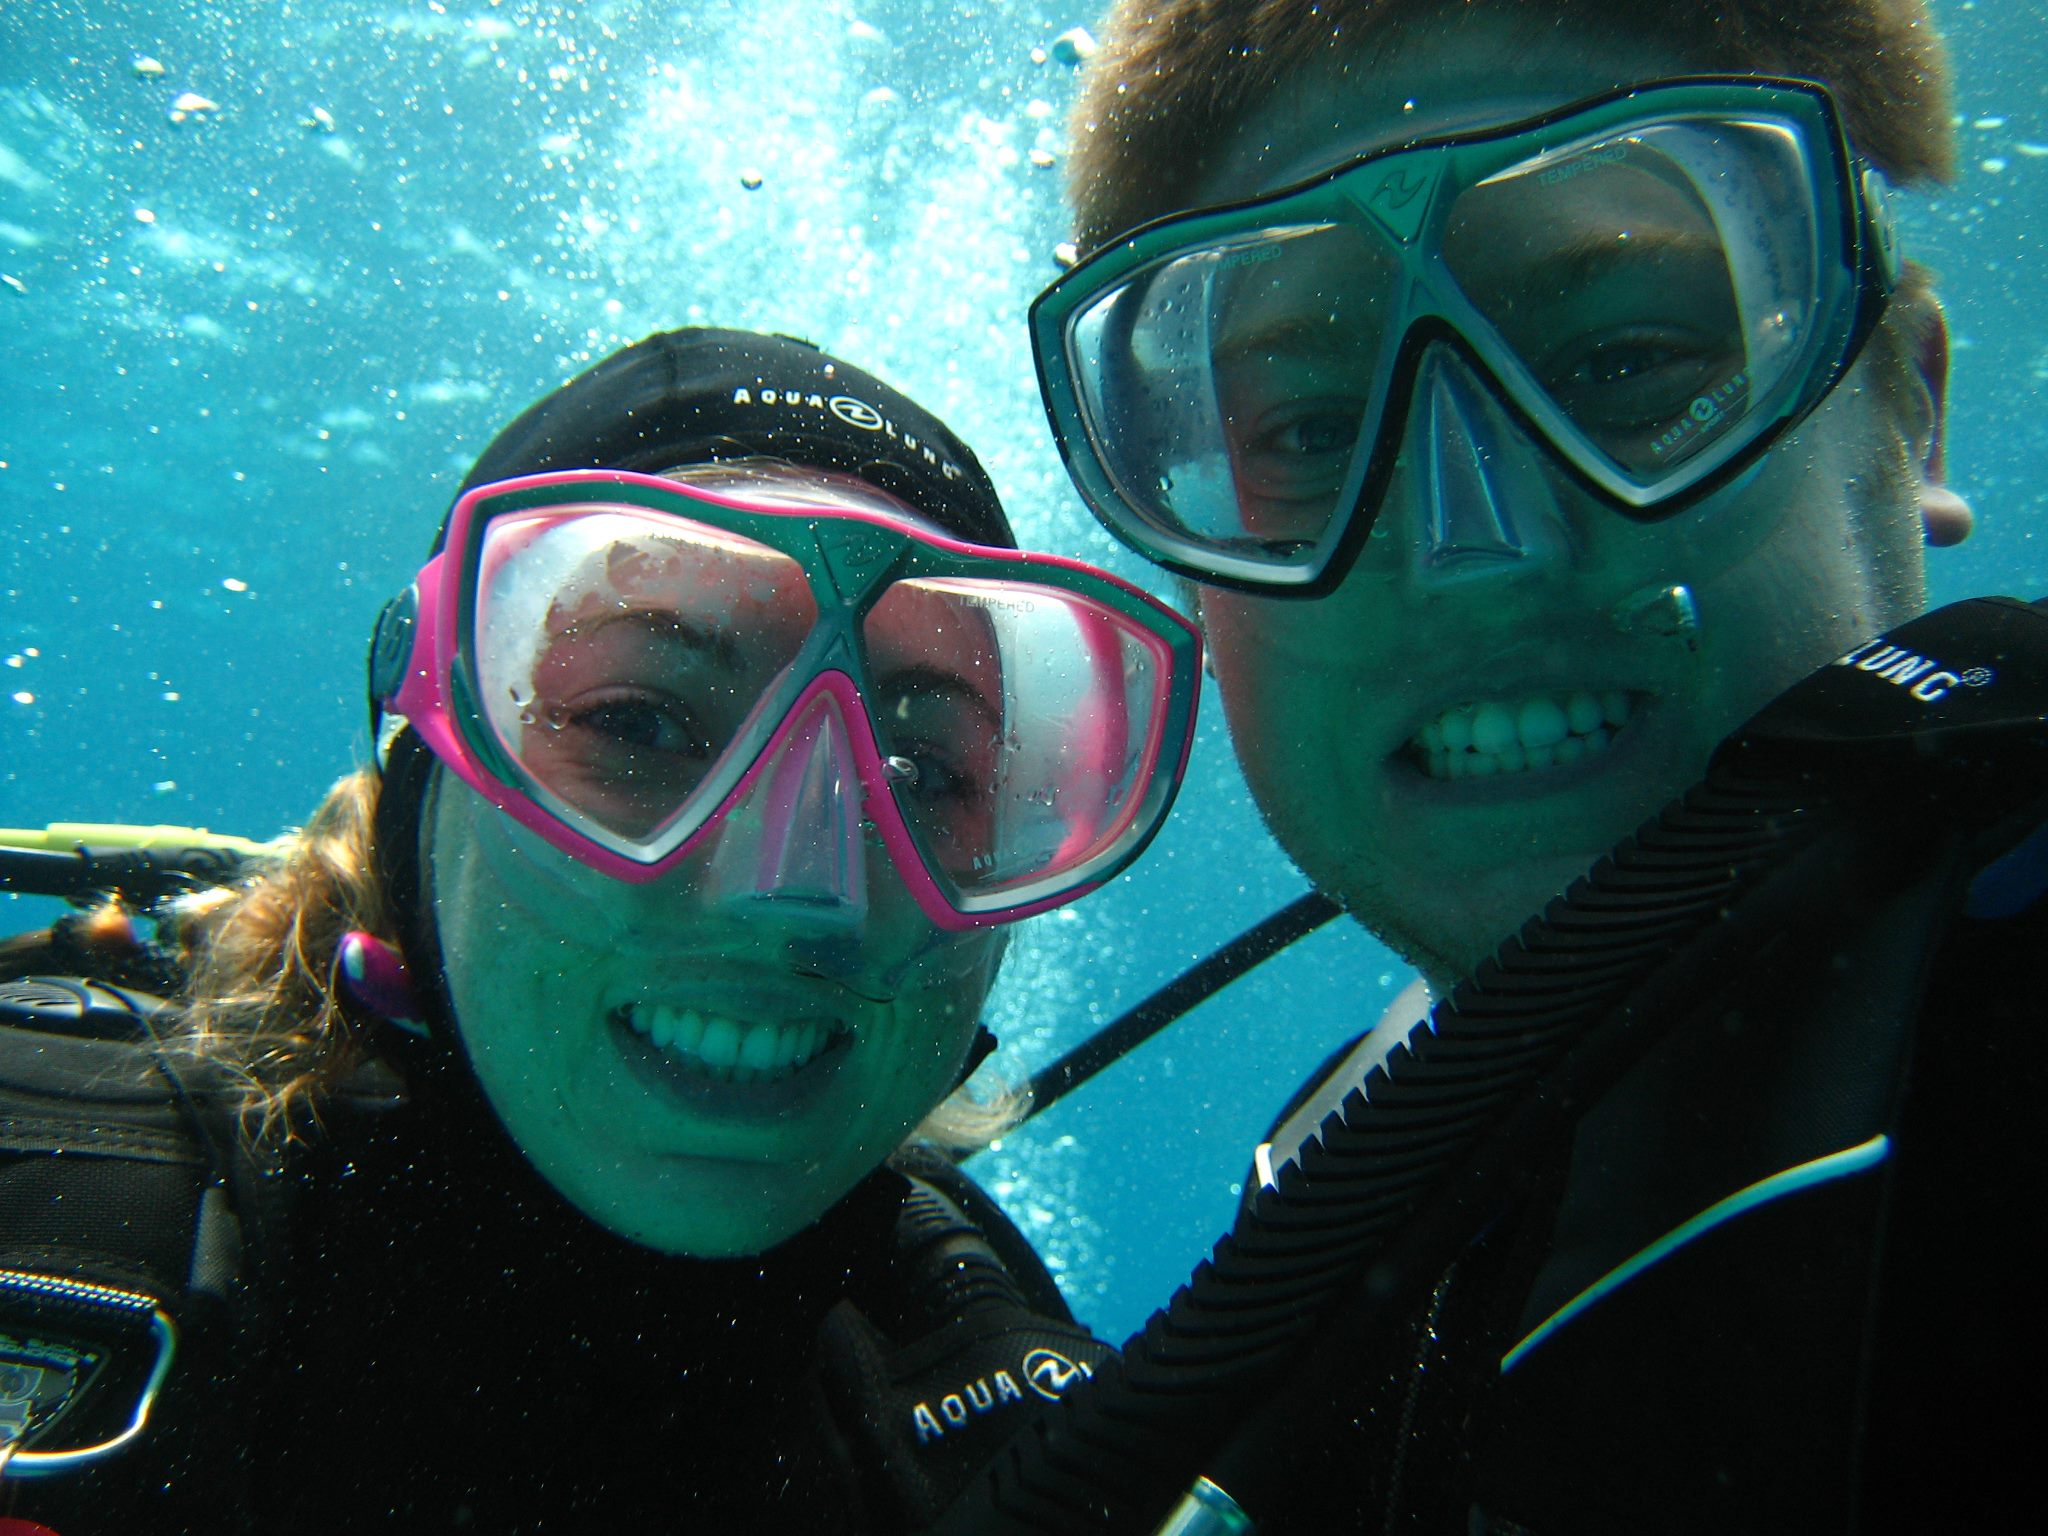 Some of our first dives out of Open Water in Roatan